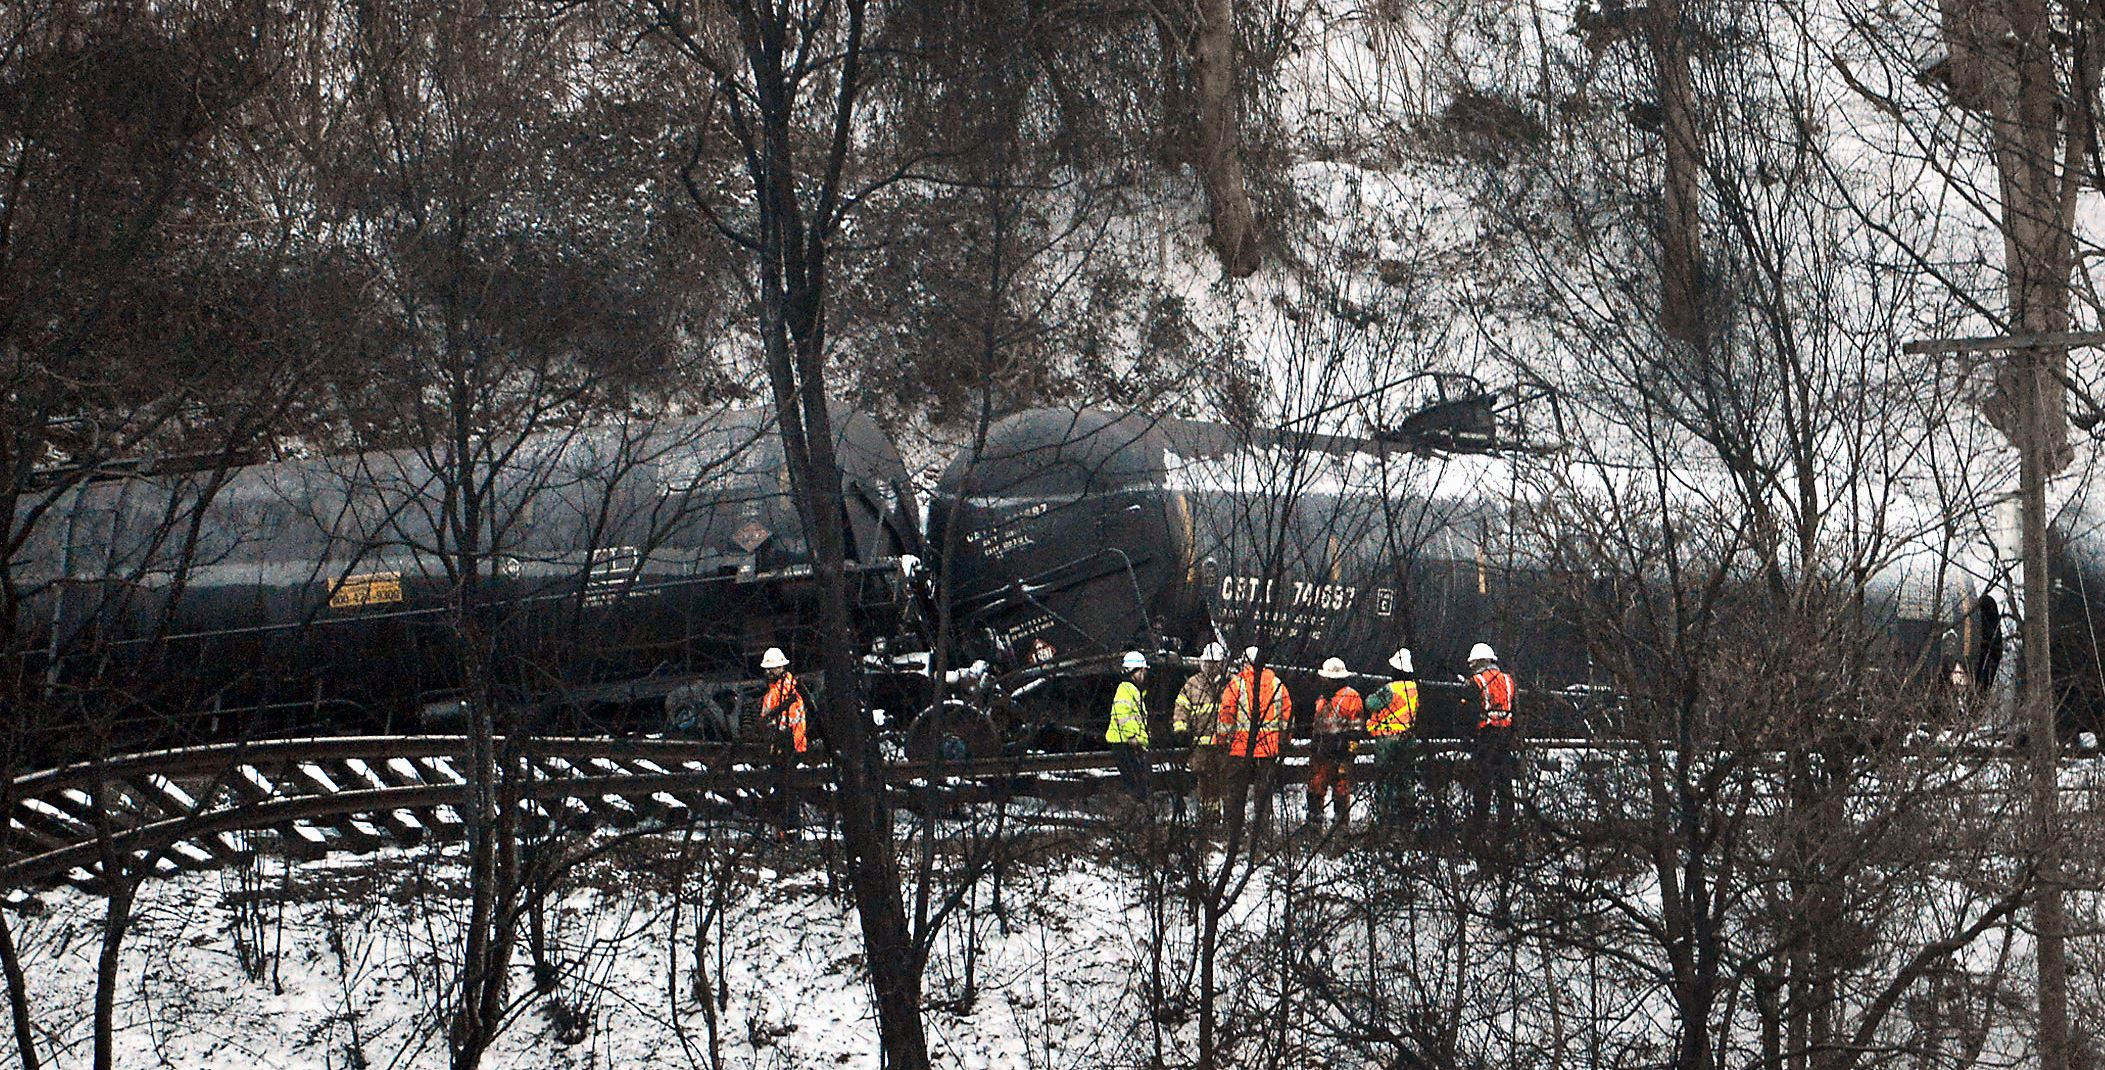 20150217MWHtrainLocal07-3 Investigators look over the scene Tuesday where a CSX train derailed and ignited near the Kanawha River in Mount Carbon, W.Va. Monday.